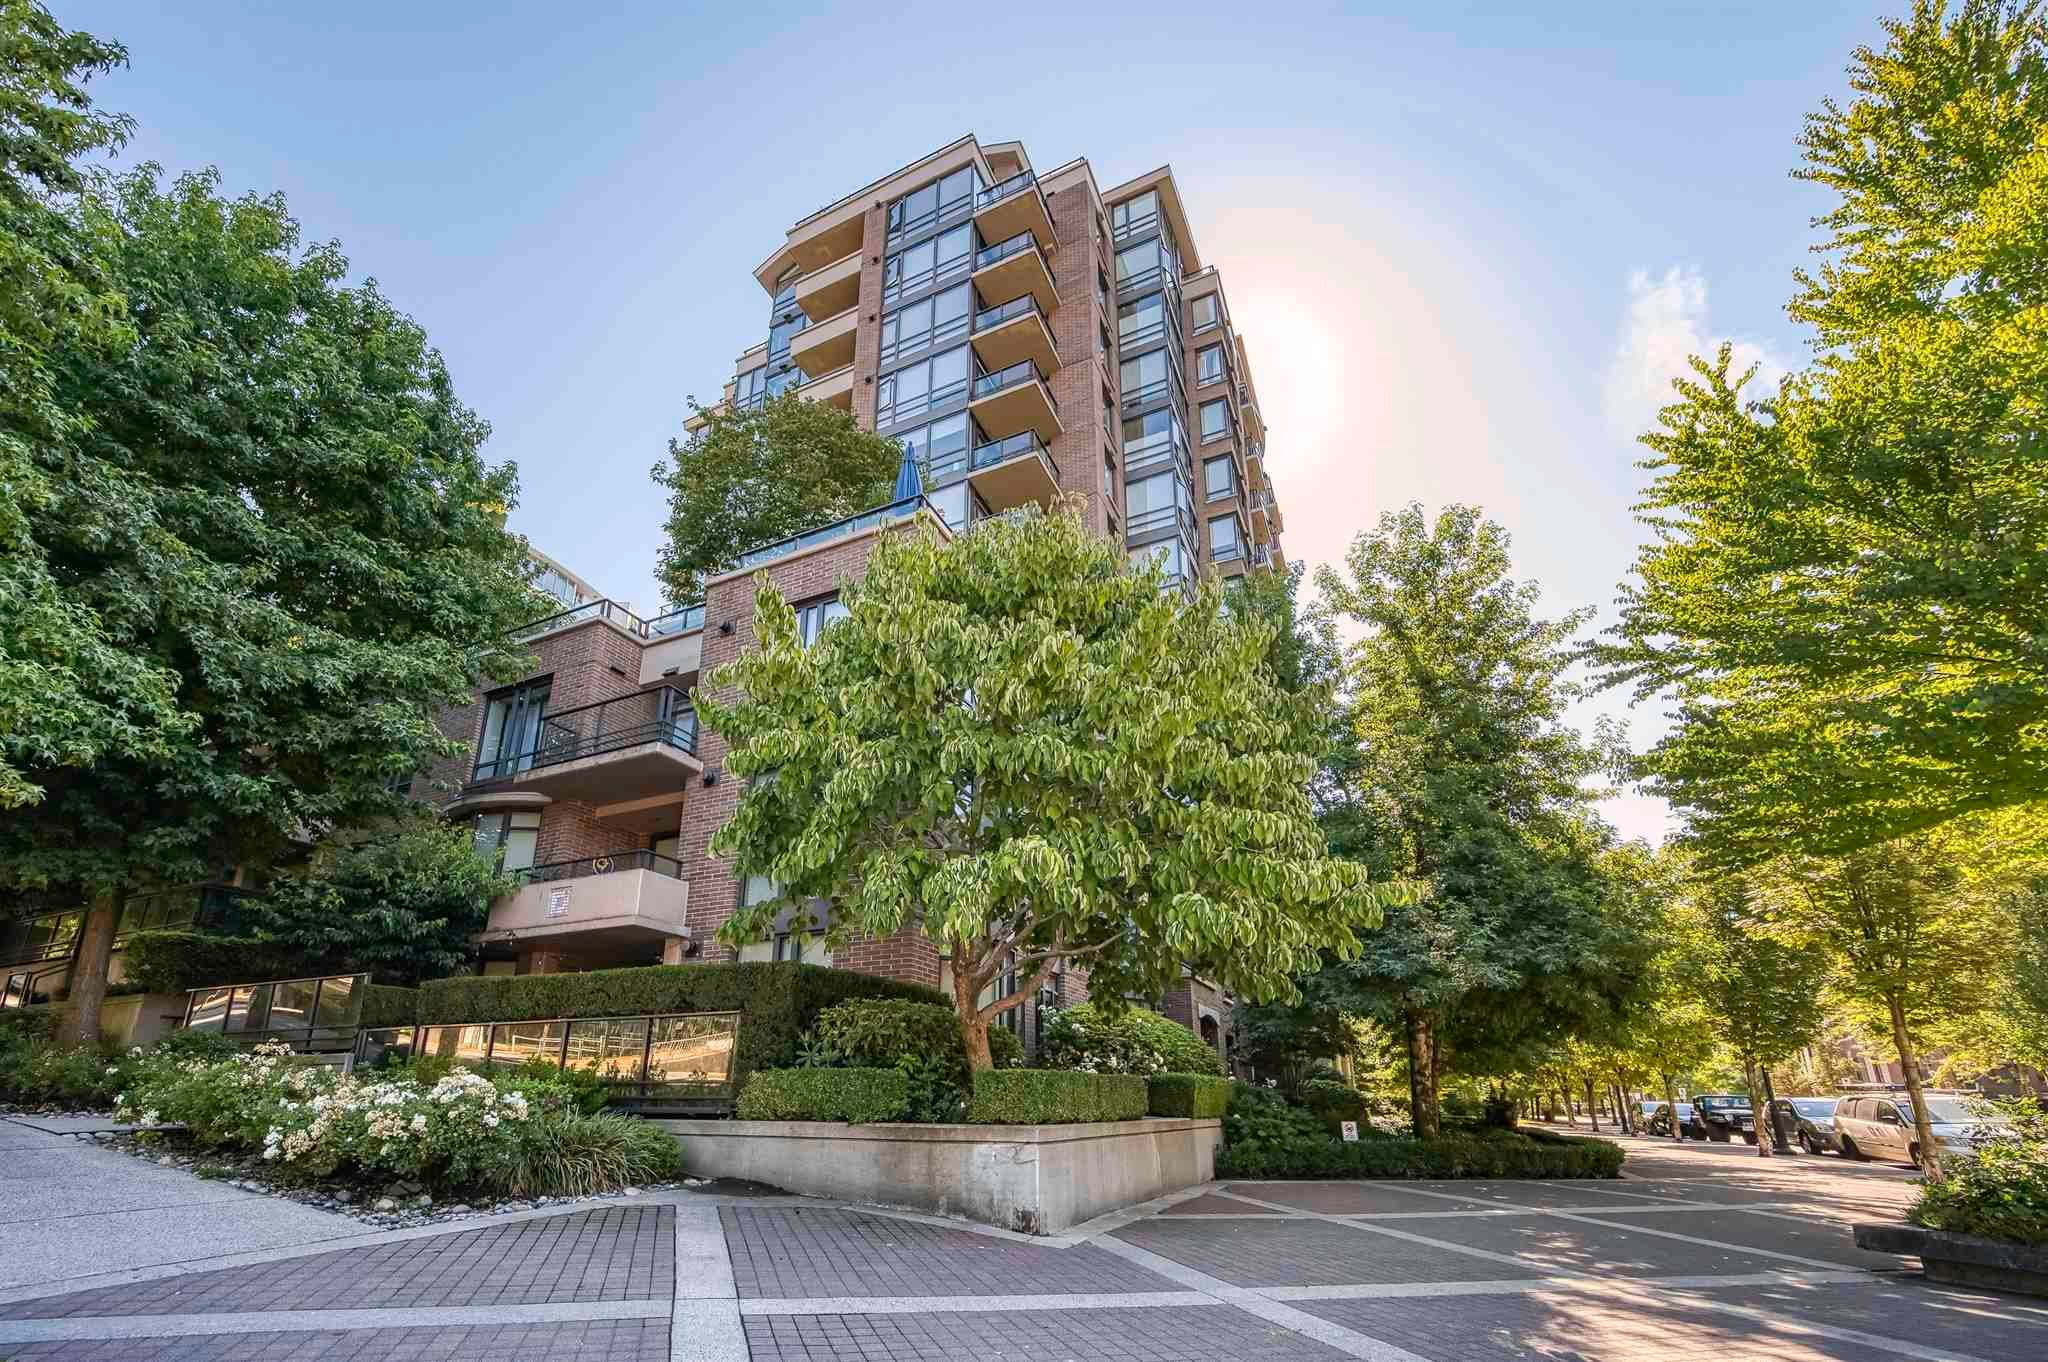 """Main Photo: 1009 170 W 1ST Street in North Vancouver: Lower Lonsdale Condo for sale in """"ONE PARK LANE"""" : MLS®# R2605831"""